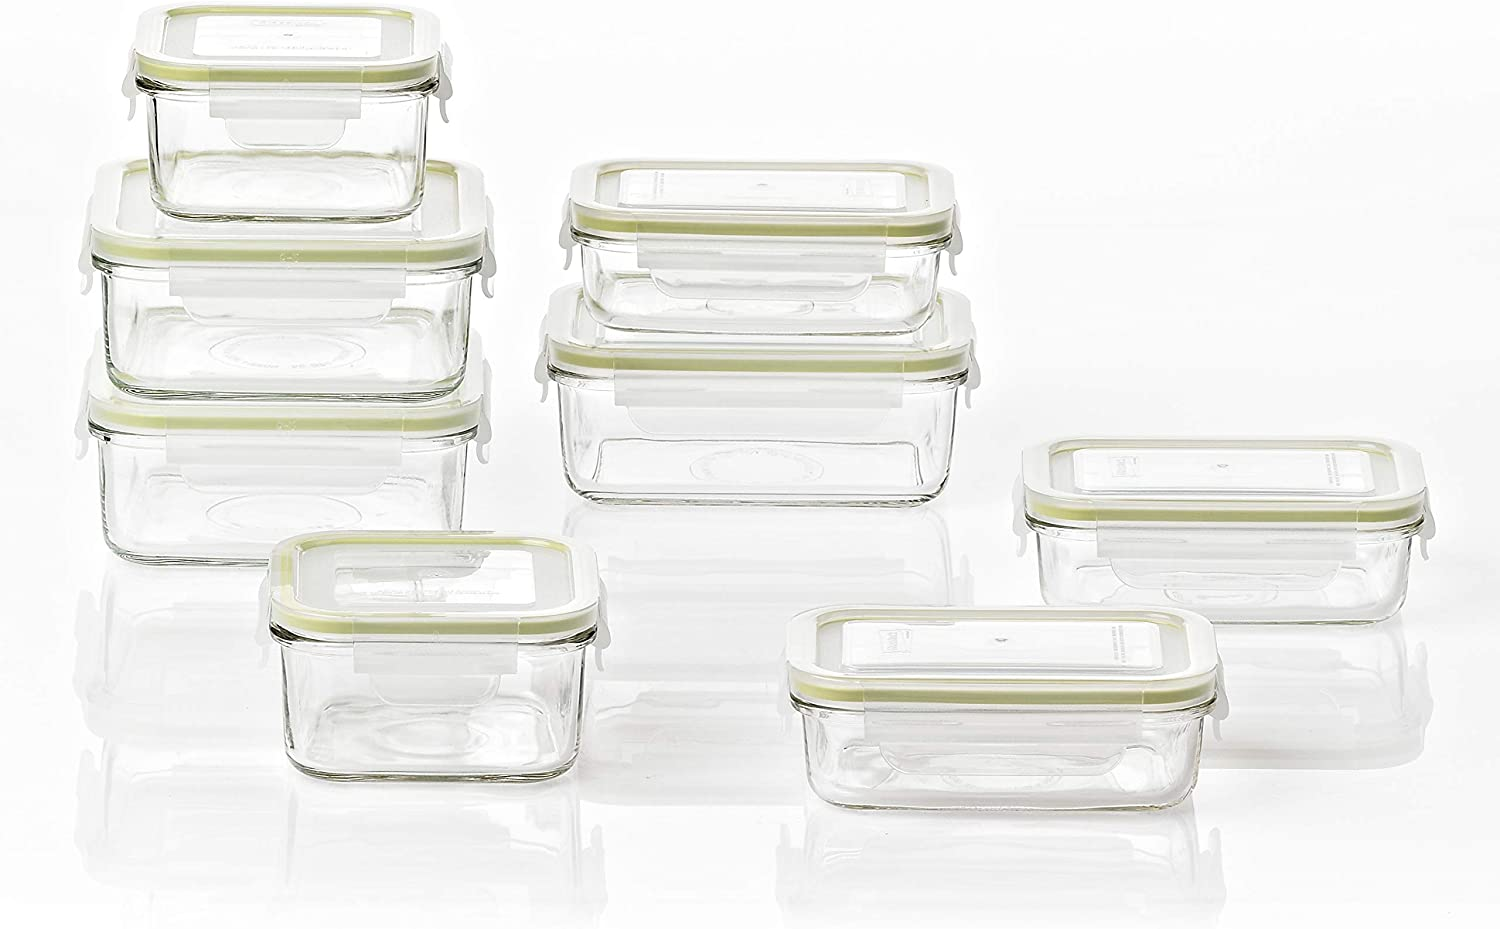 Glasslock Reusable Food Storage Container Set with Locking Lids for Leftovers and Meal Prepping, Oven & Freezer Safe, 16 Piece Set